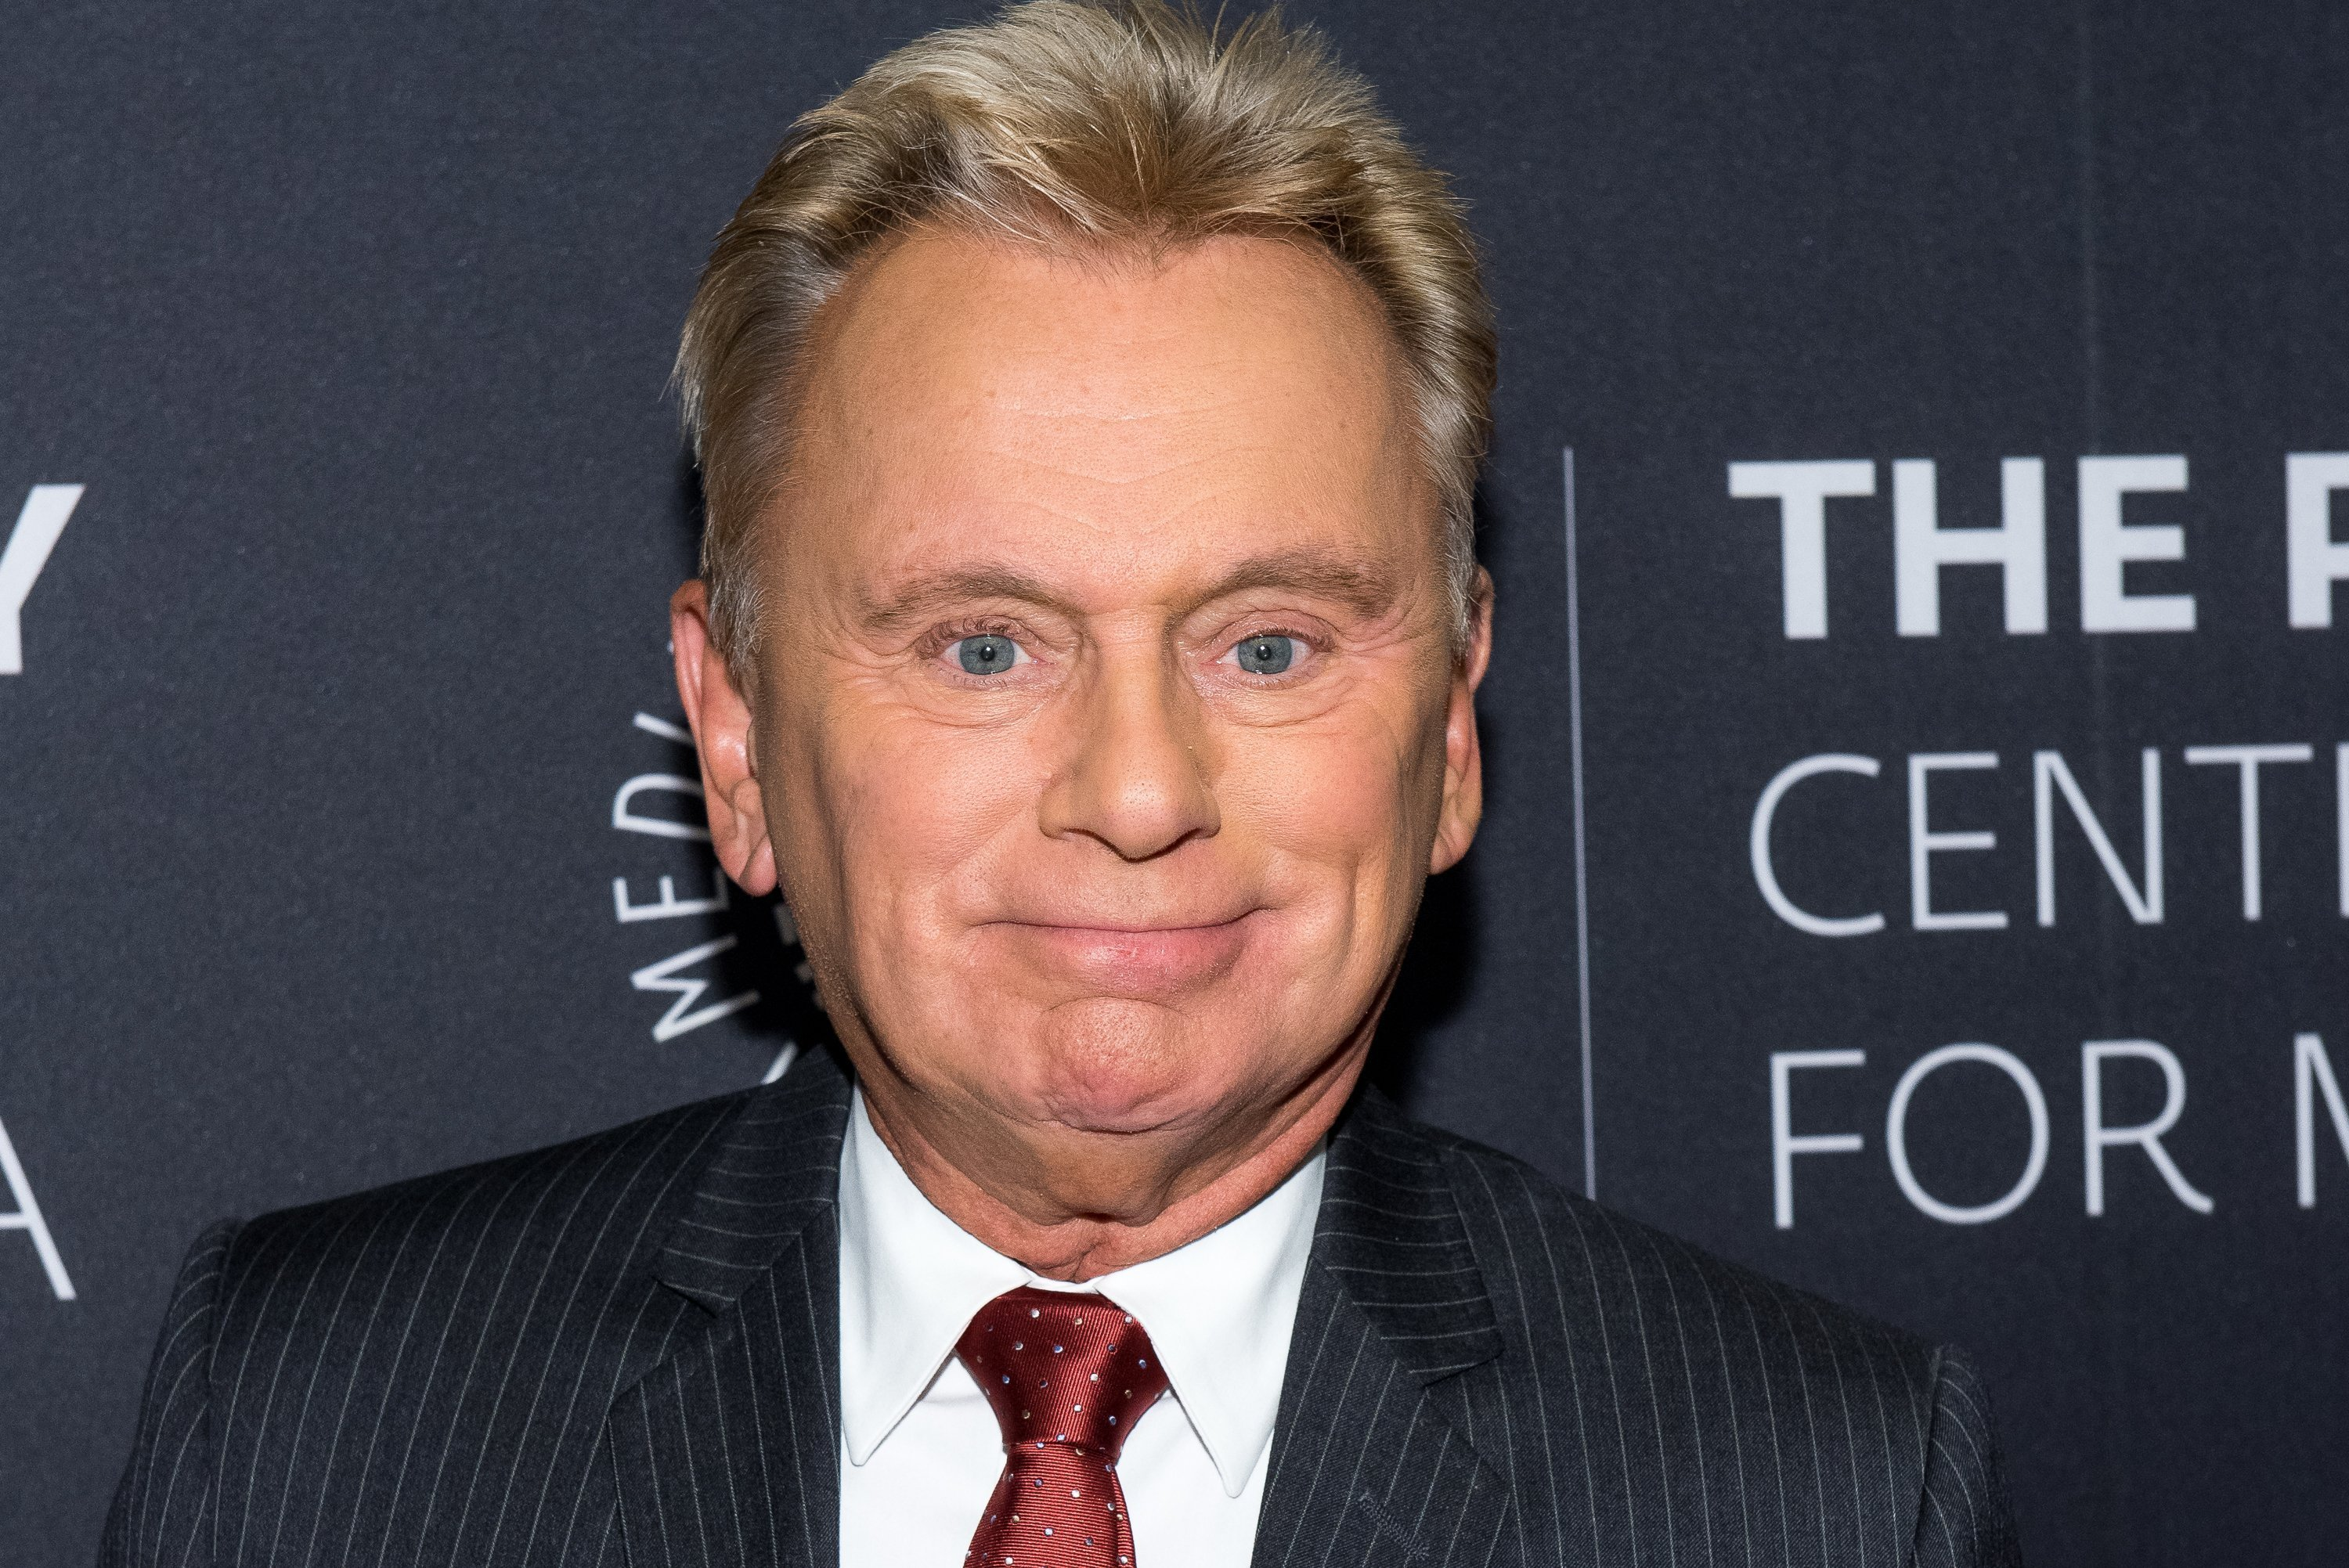 Pat Sajak at The Paley Center for Media on November 15, 2017 in New York City | Source: Getty Images